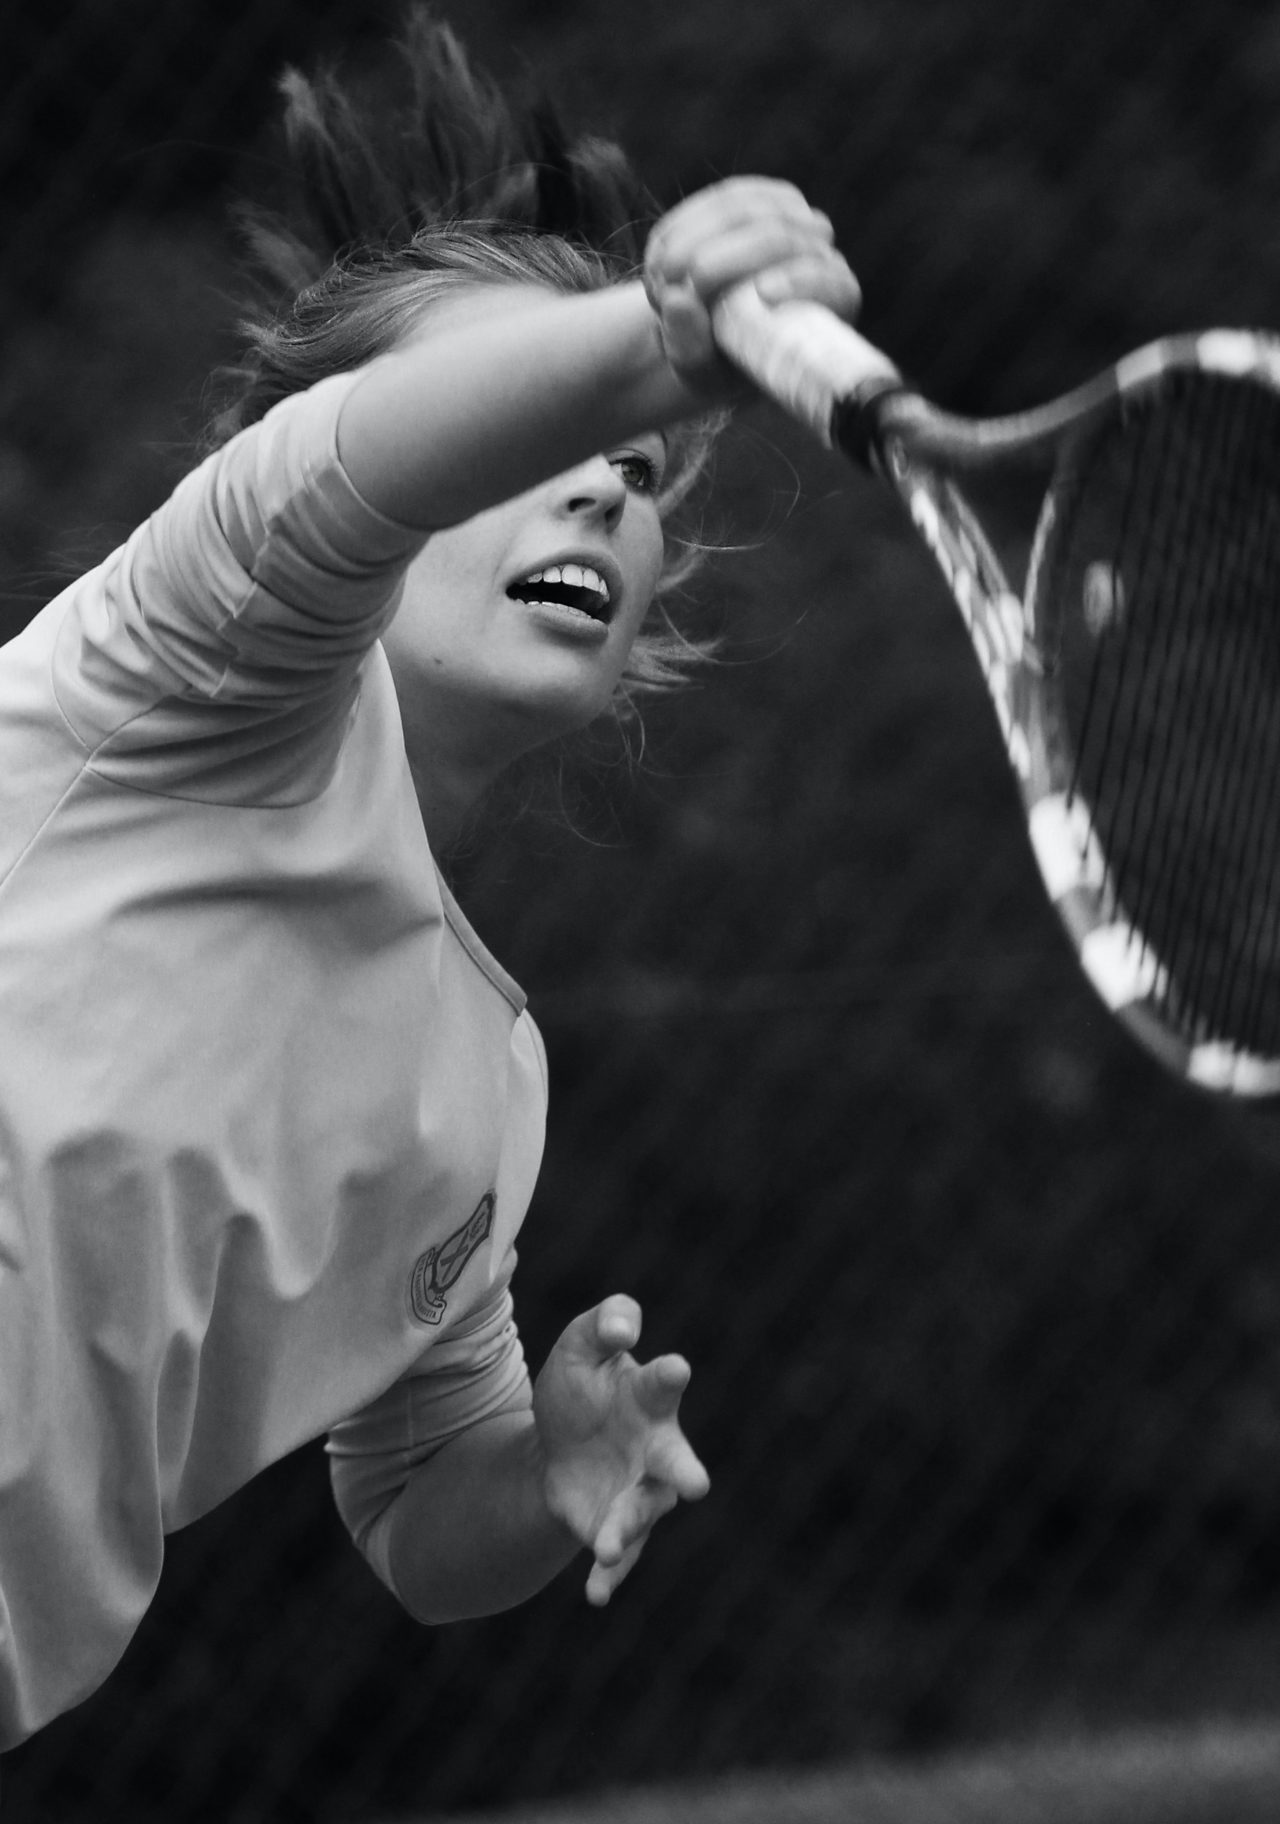 photo of tennis serve by Patrick Case on Pexels